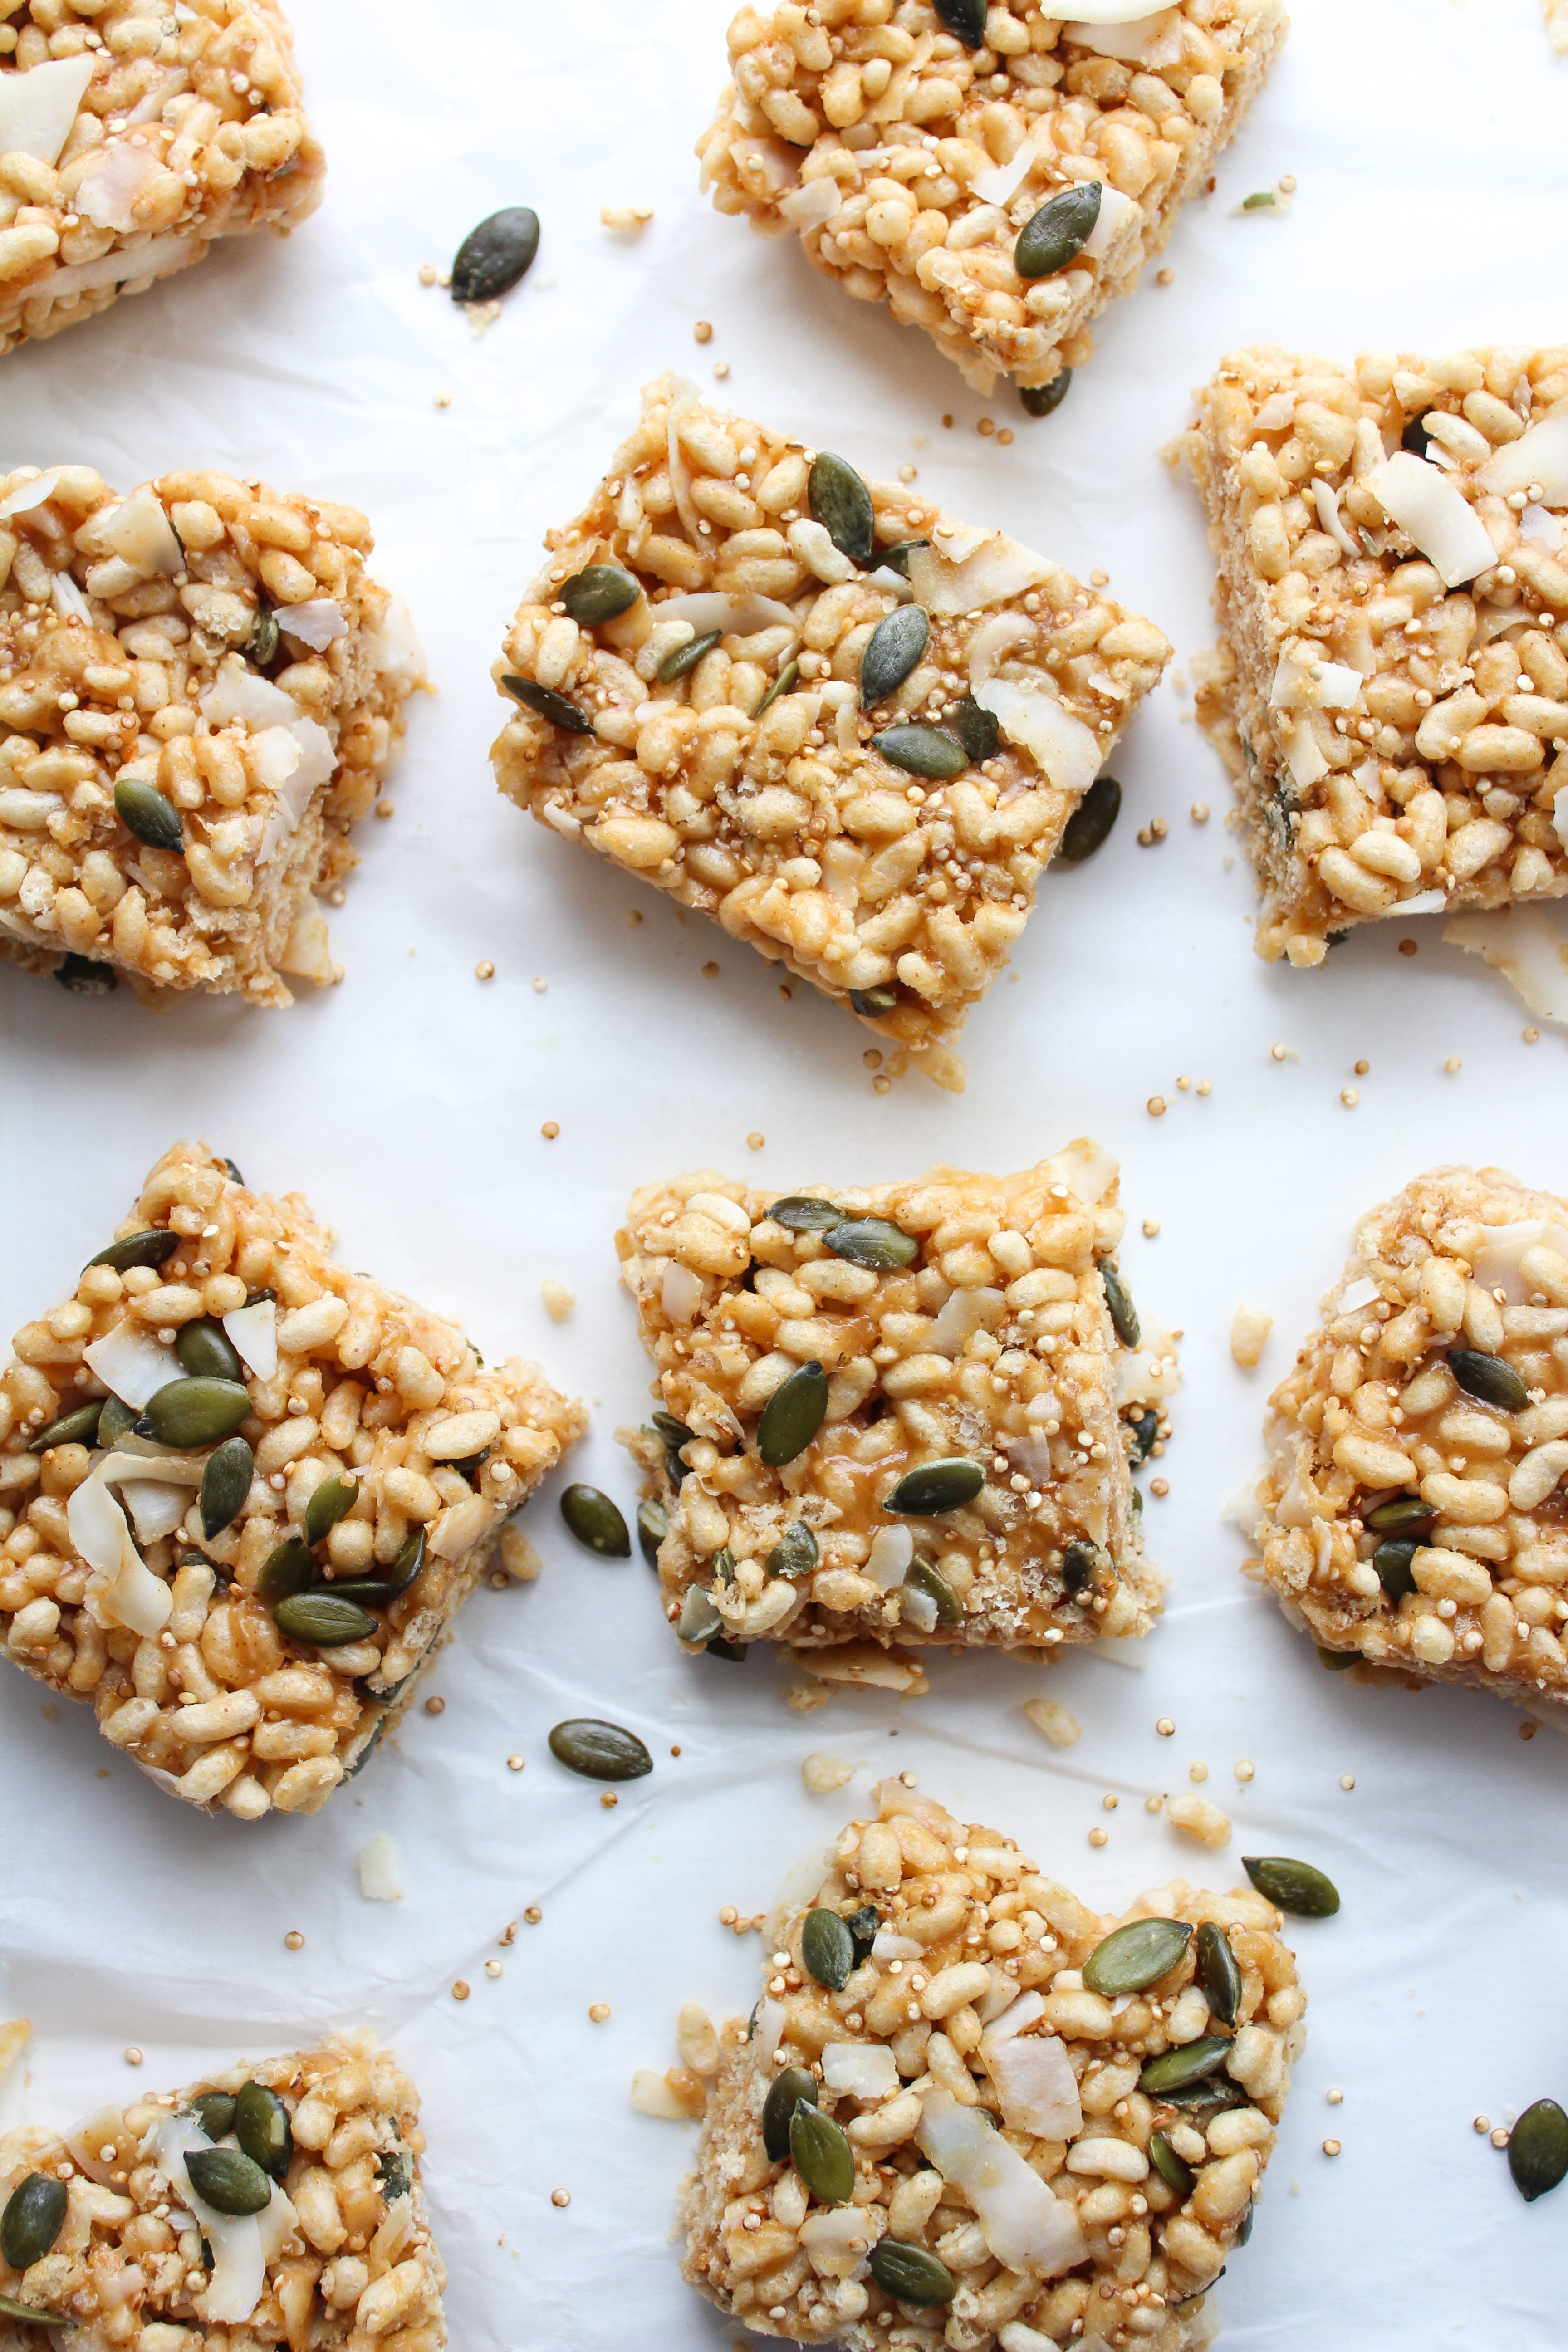 Superfood Vegan Rice Krispie Treats - a childhood favorite reimagined with a few healthier tweaks and additions. Organic puffed brown rice with toasted quinoa, coconut flakes, and pepitas mixed together in a nut butter glue.